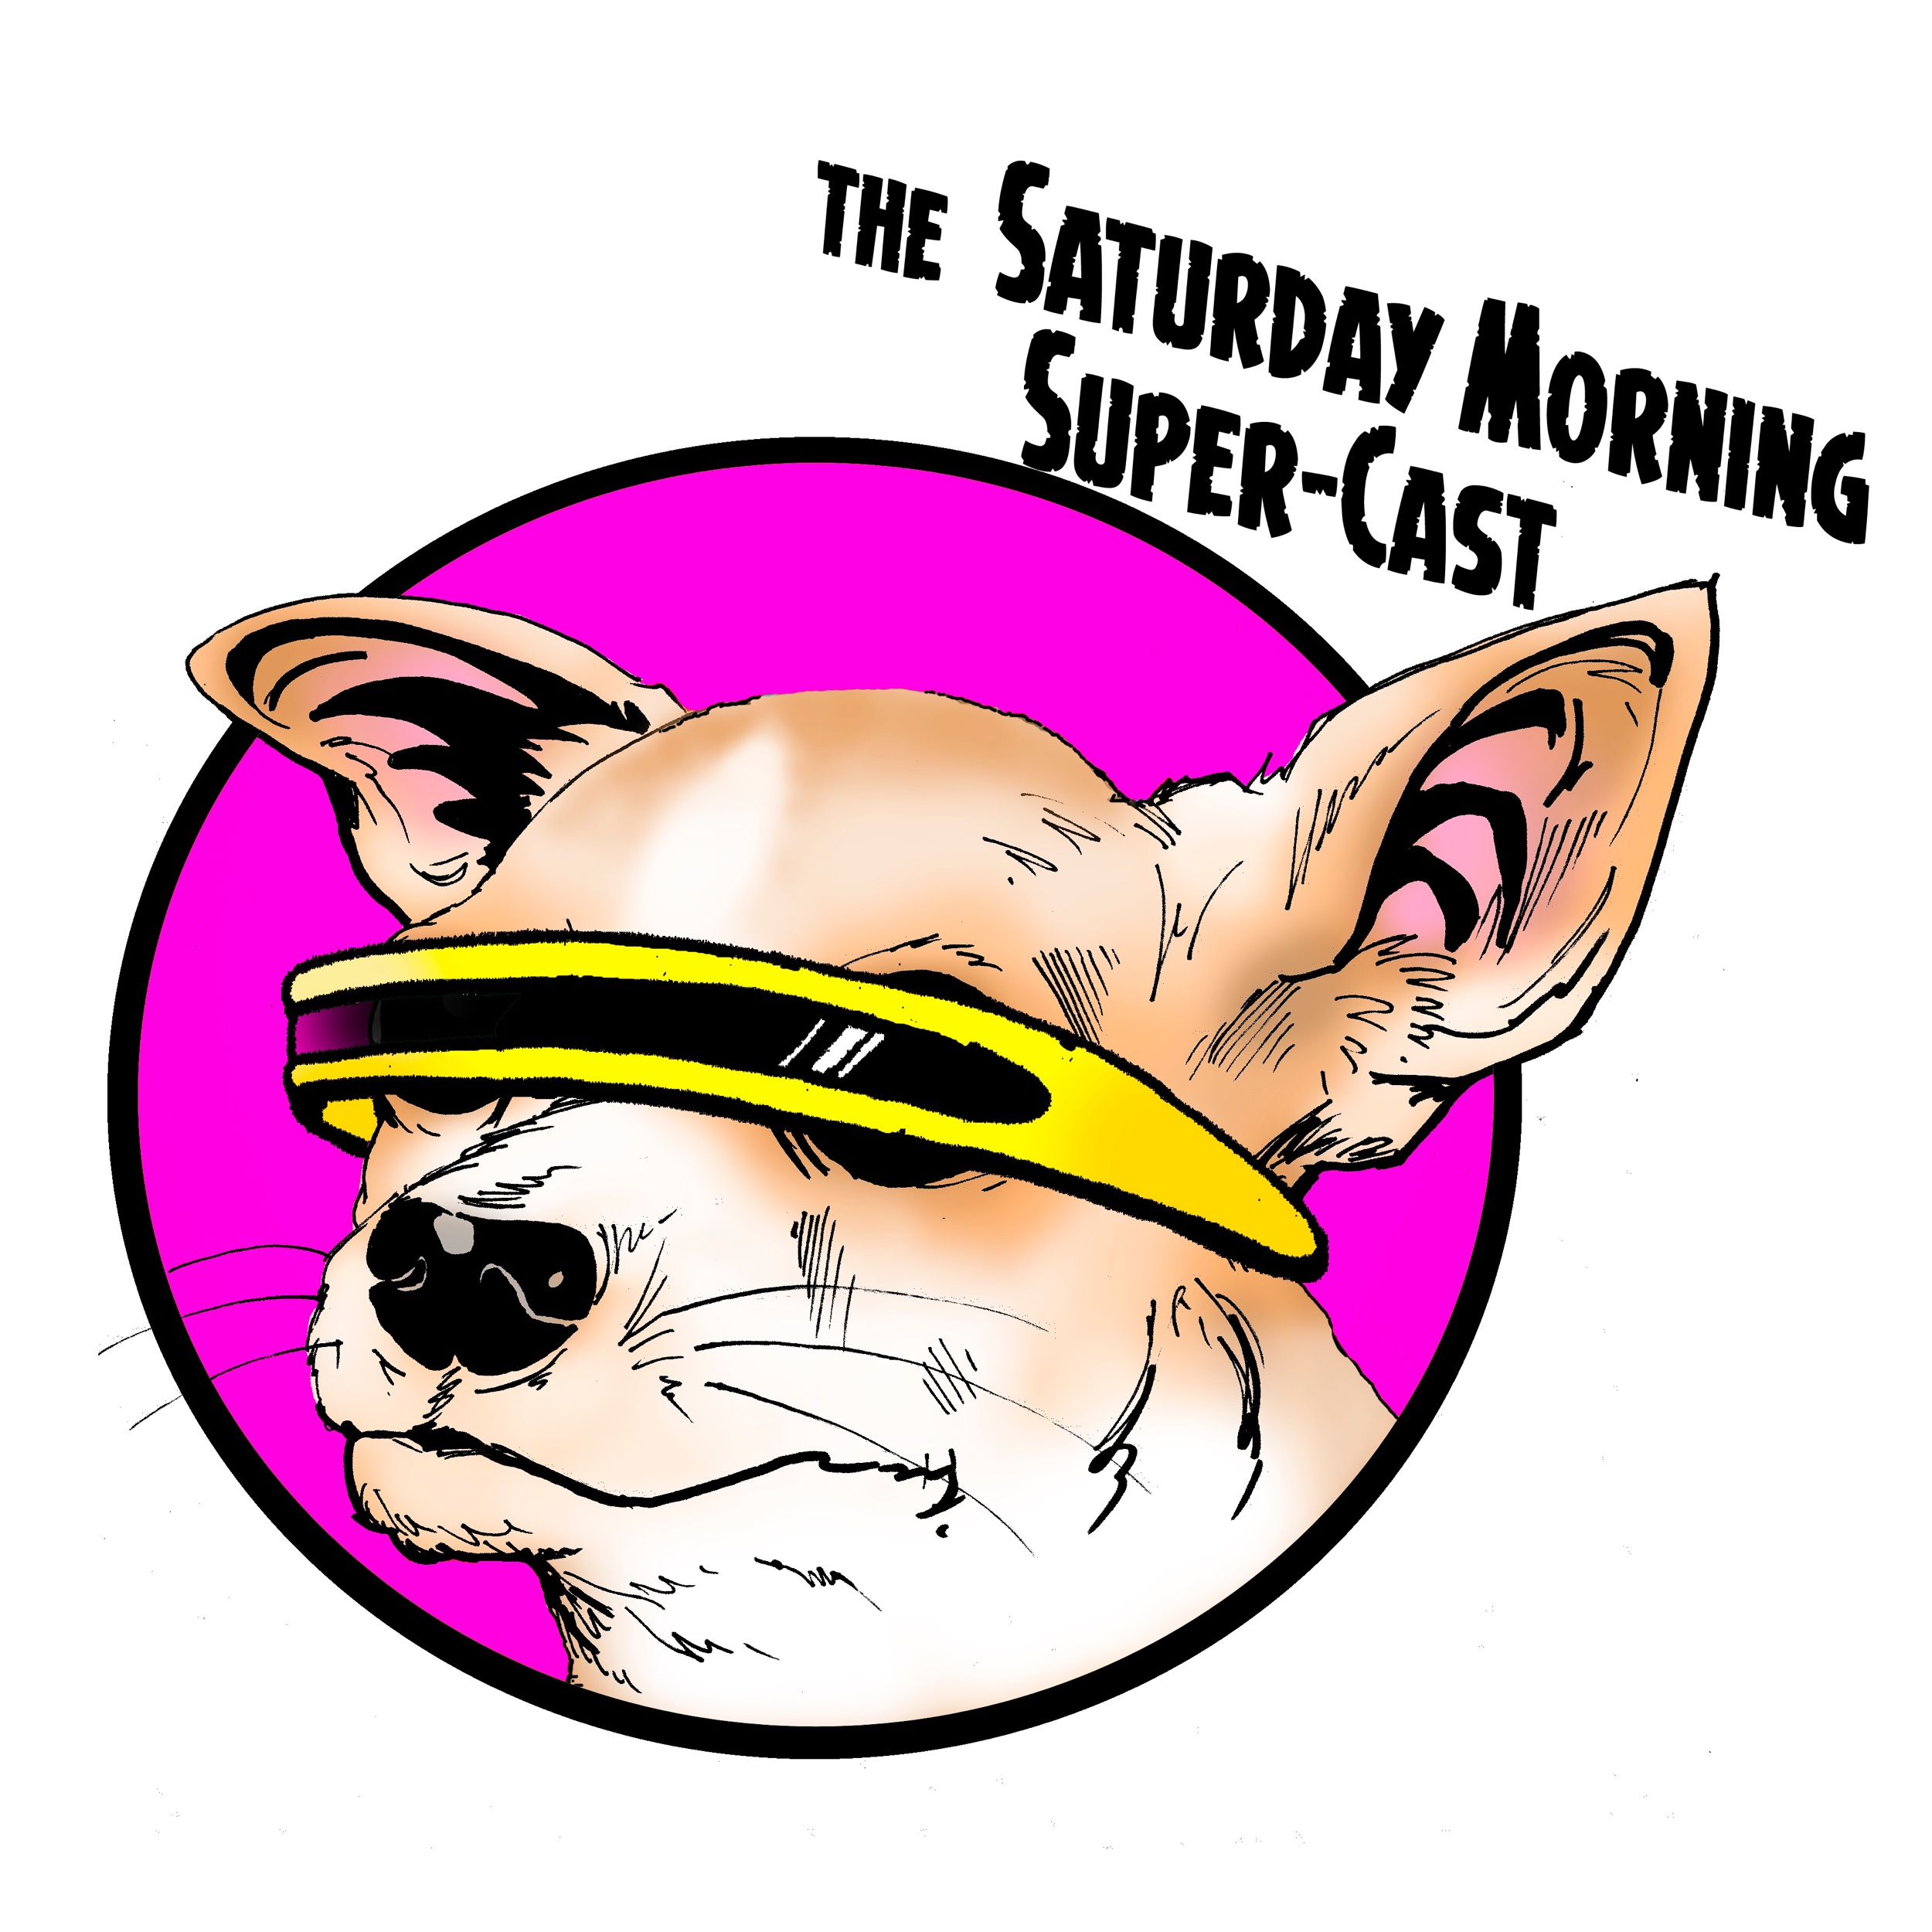 The Saturday Morning Super-Cast - Saturday Mornings were made for 2 things; Cartoons and Cereal! The Saturday Morning Super-Cast is a celebration of both. Join us as we remember the things that made it worth waking up early.